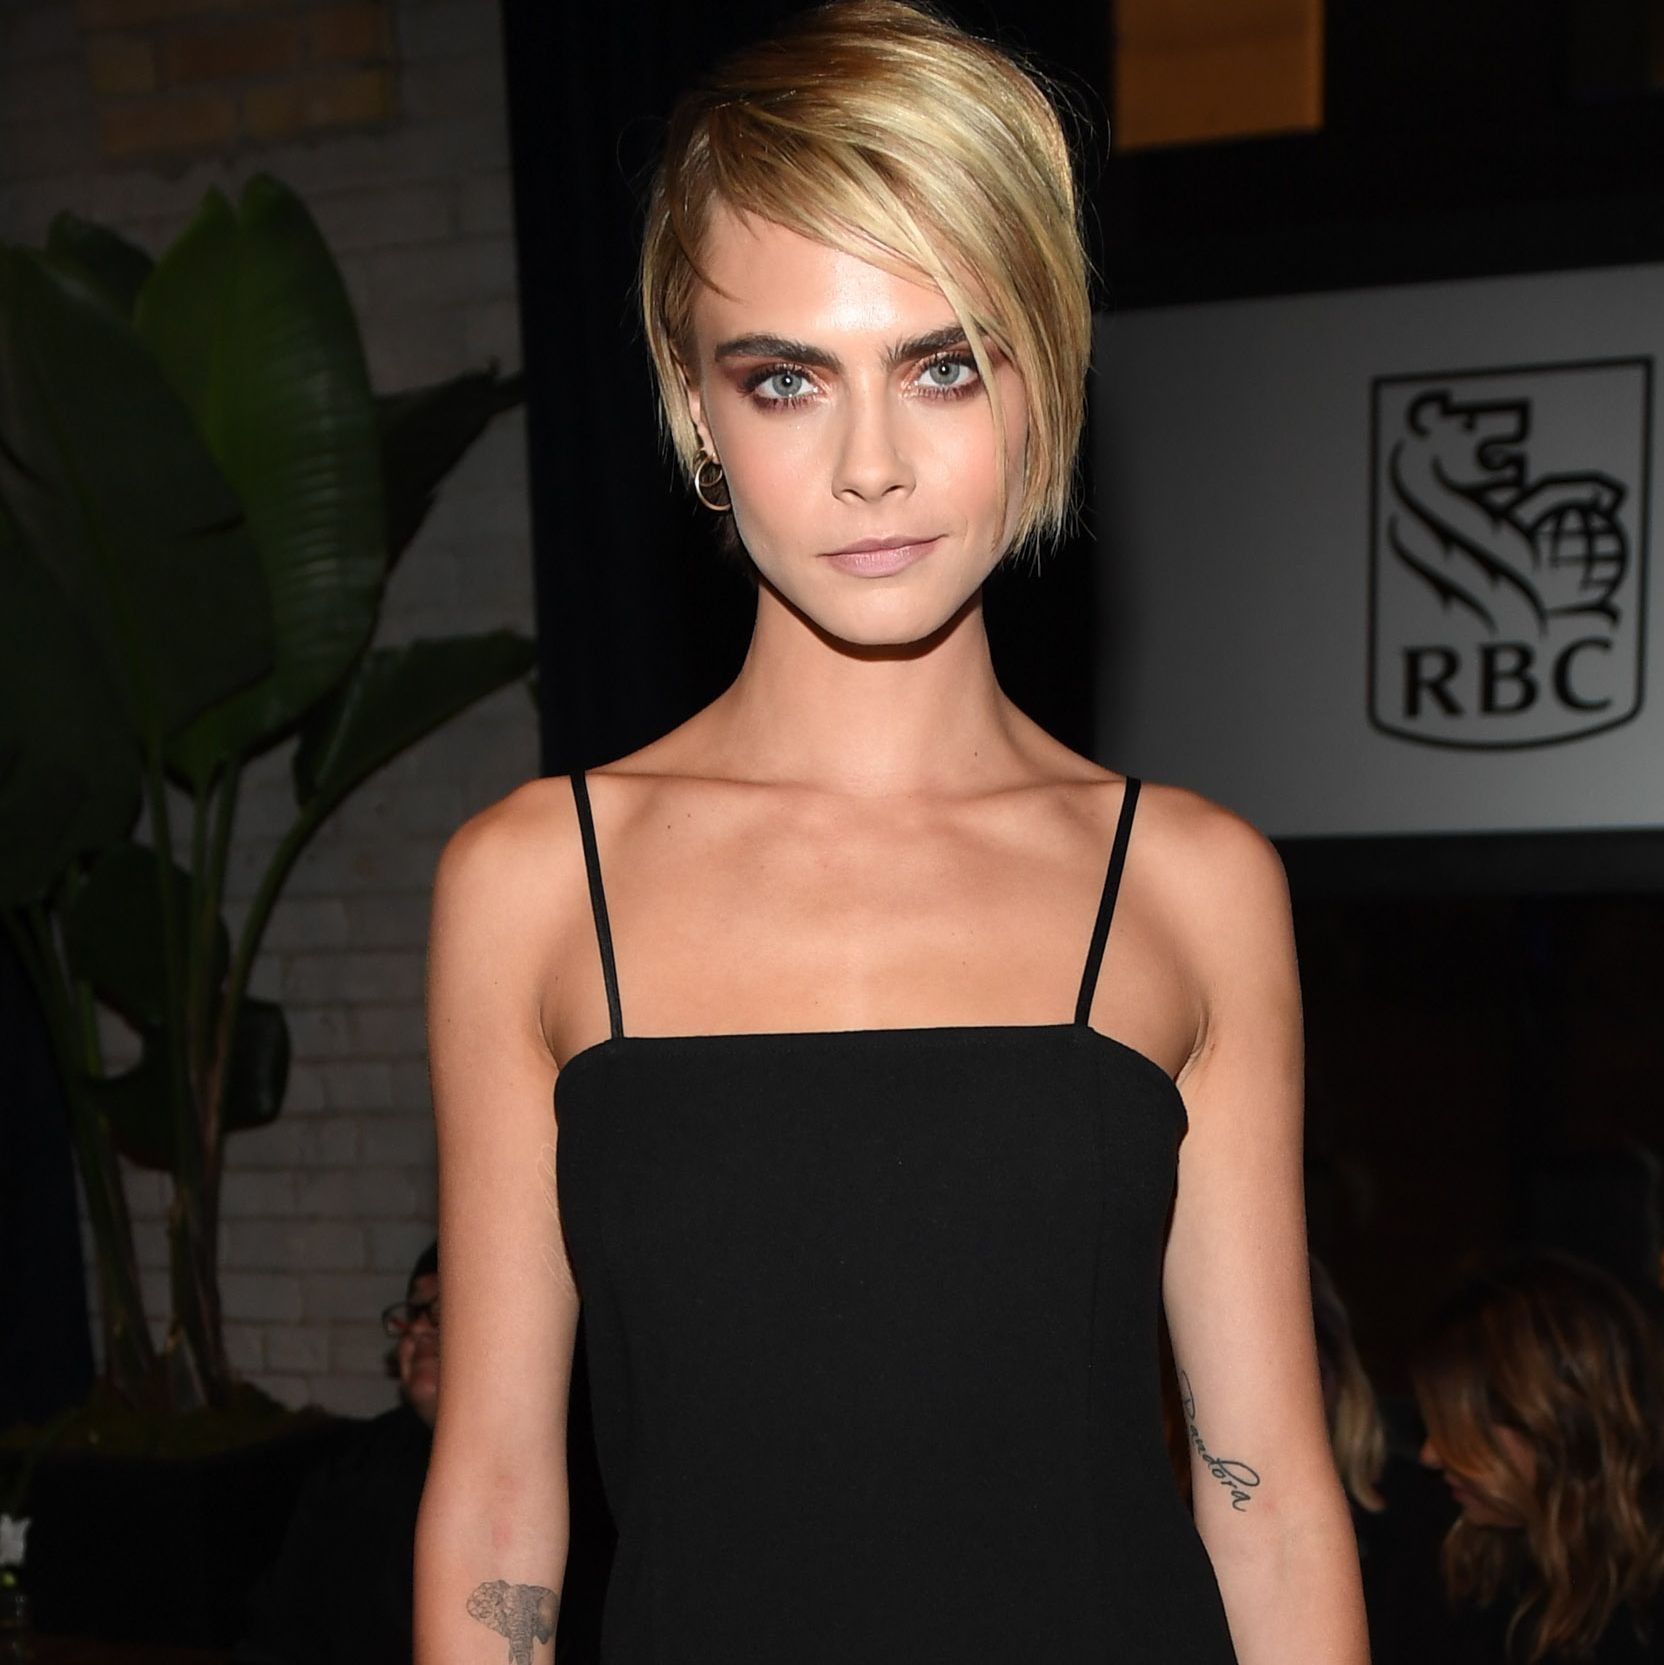 [Image: cara-delevingne-attends-rbc-hosted-her-s...size=768:*]